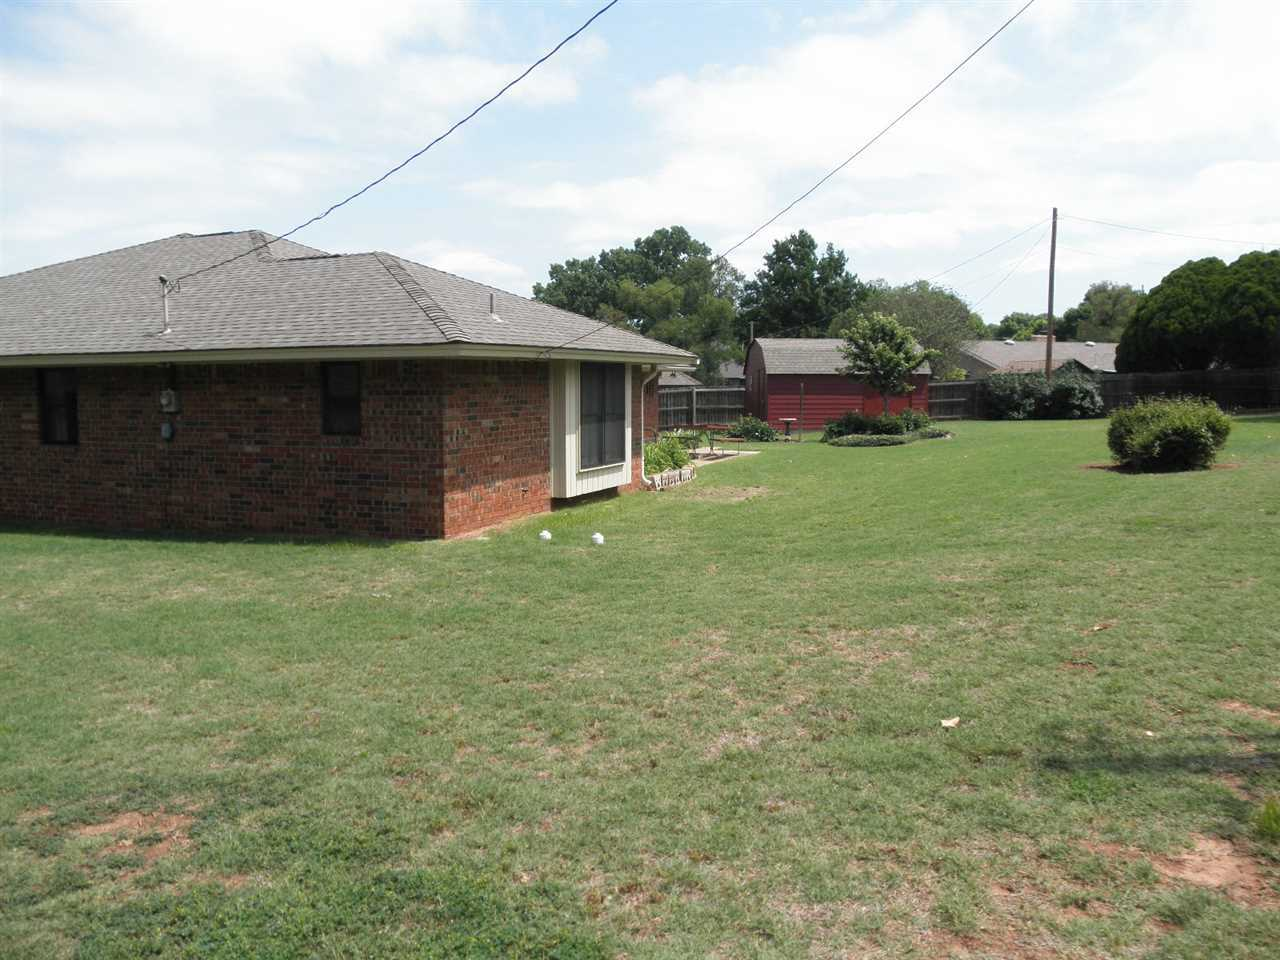 Sold Cross Sale W/ MLS | 2416 Donner Ave. Ponca City, OK 74604 20